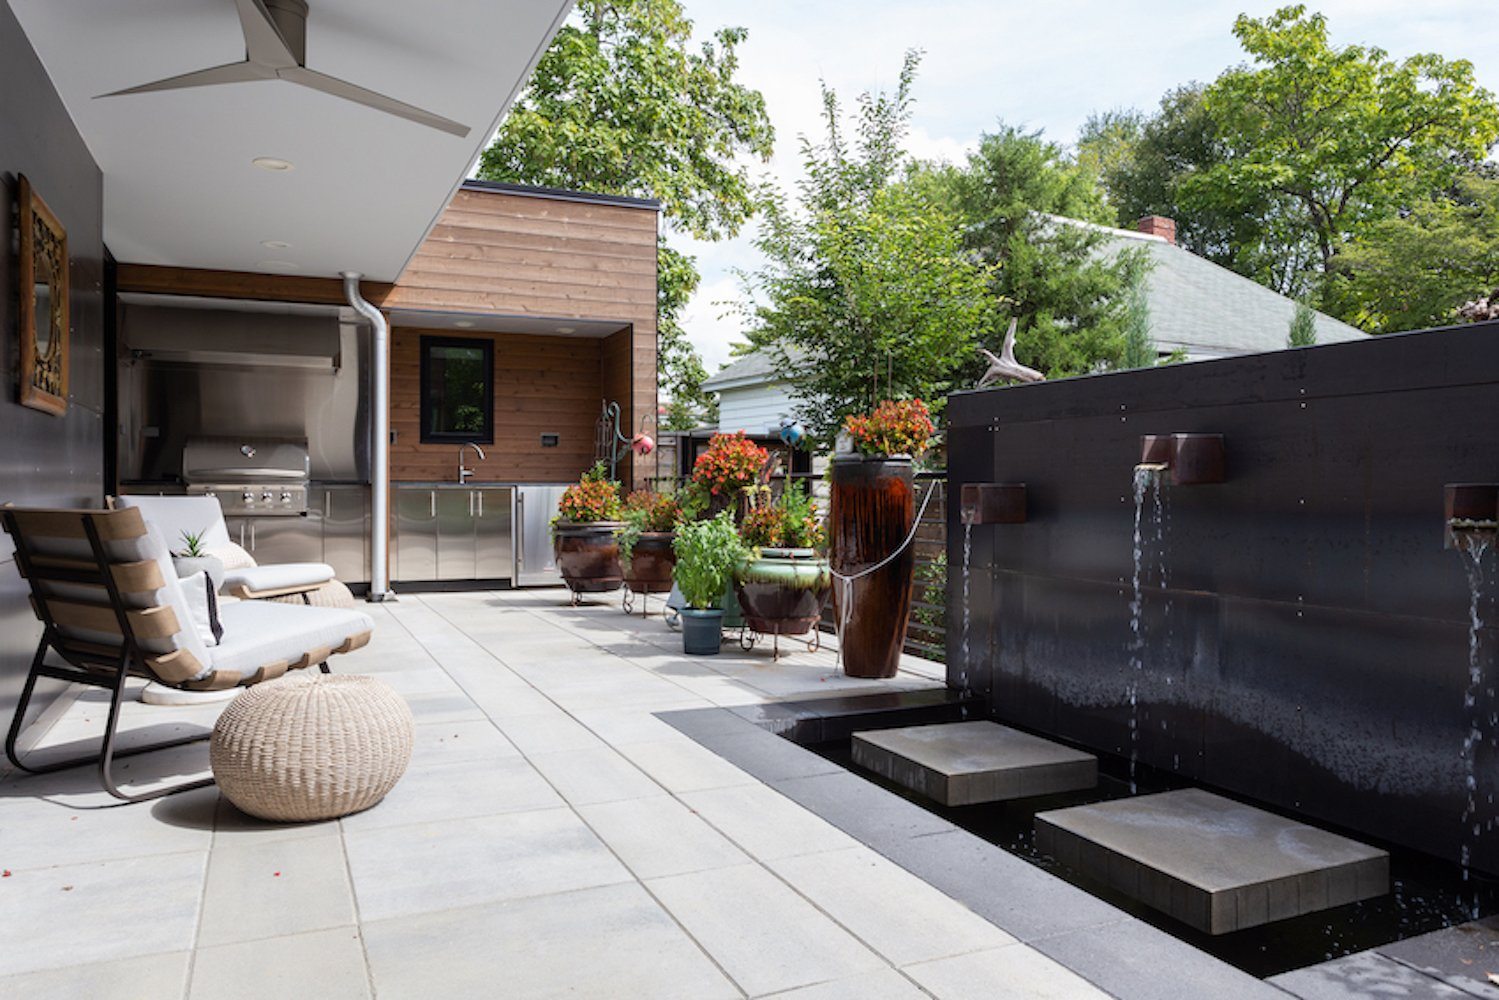 Exterior, Metal Roof Material, Flat RoofLine, Metal Siding Material, House Building Type, and Wood Siding Material The patio includes an outdoor kitchen (background) and a custom-fabricated steel water fountain.  The Thomas Residence